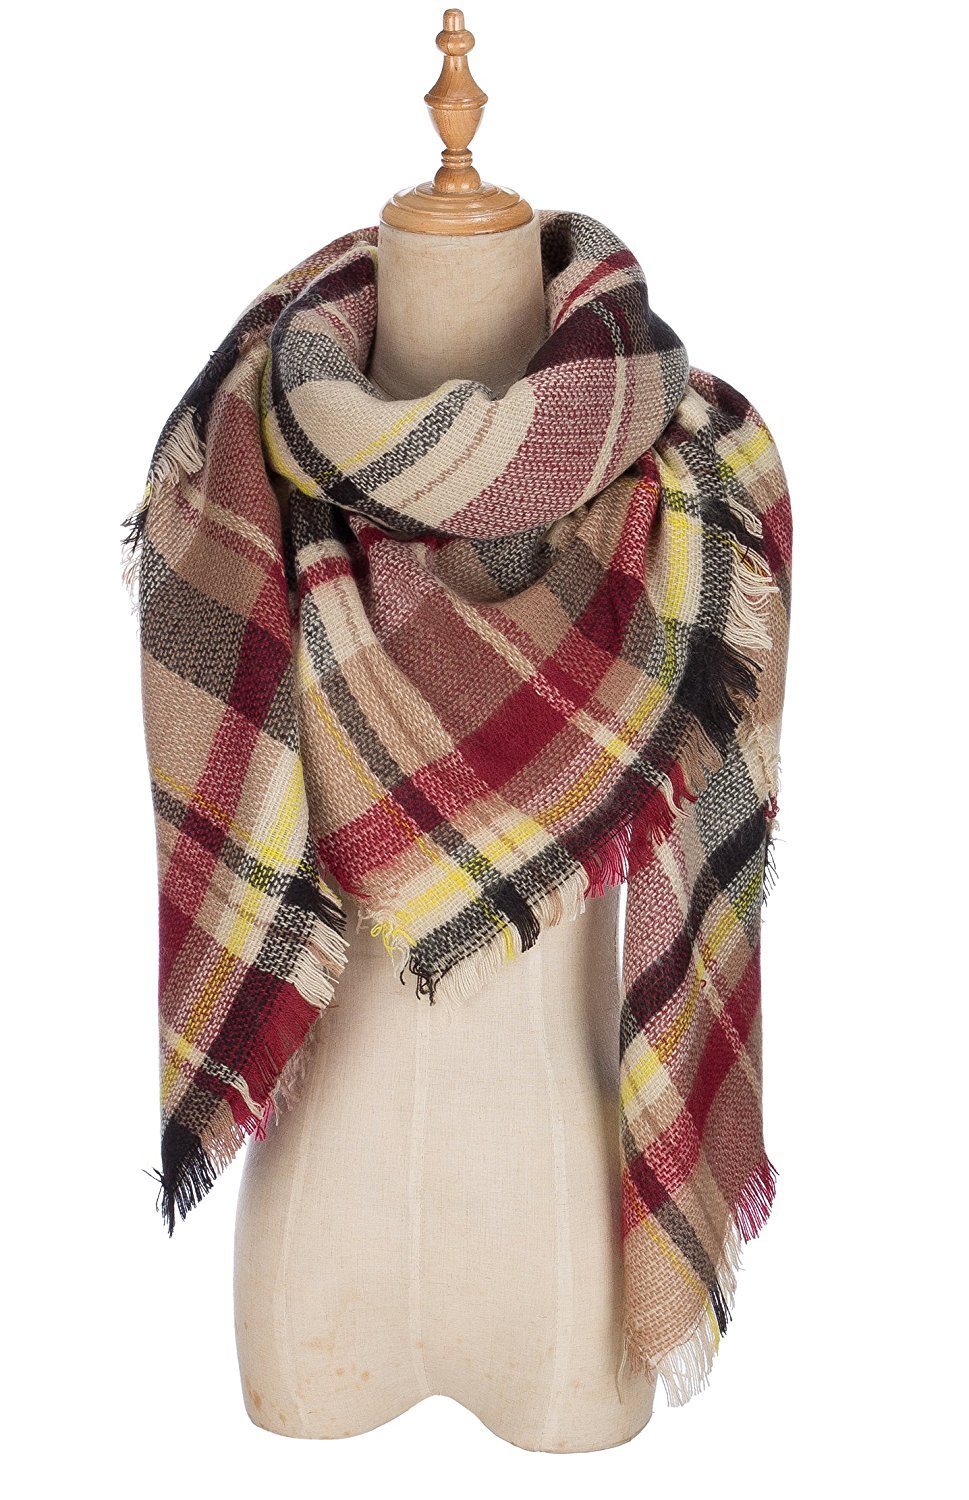 Cozy Tartan Blanket Scarf Wrap Shawl Neck Stole Warm Plaid Checked Pashmina Black Claret